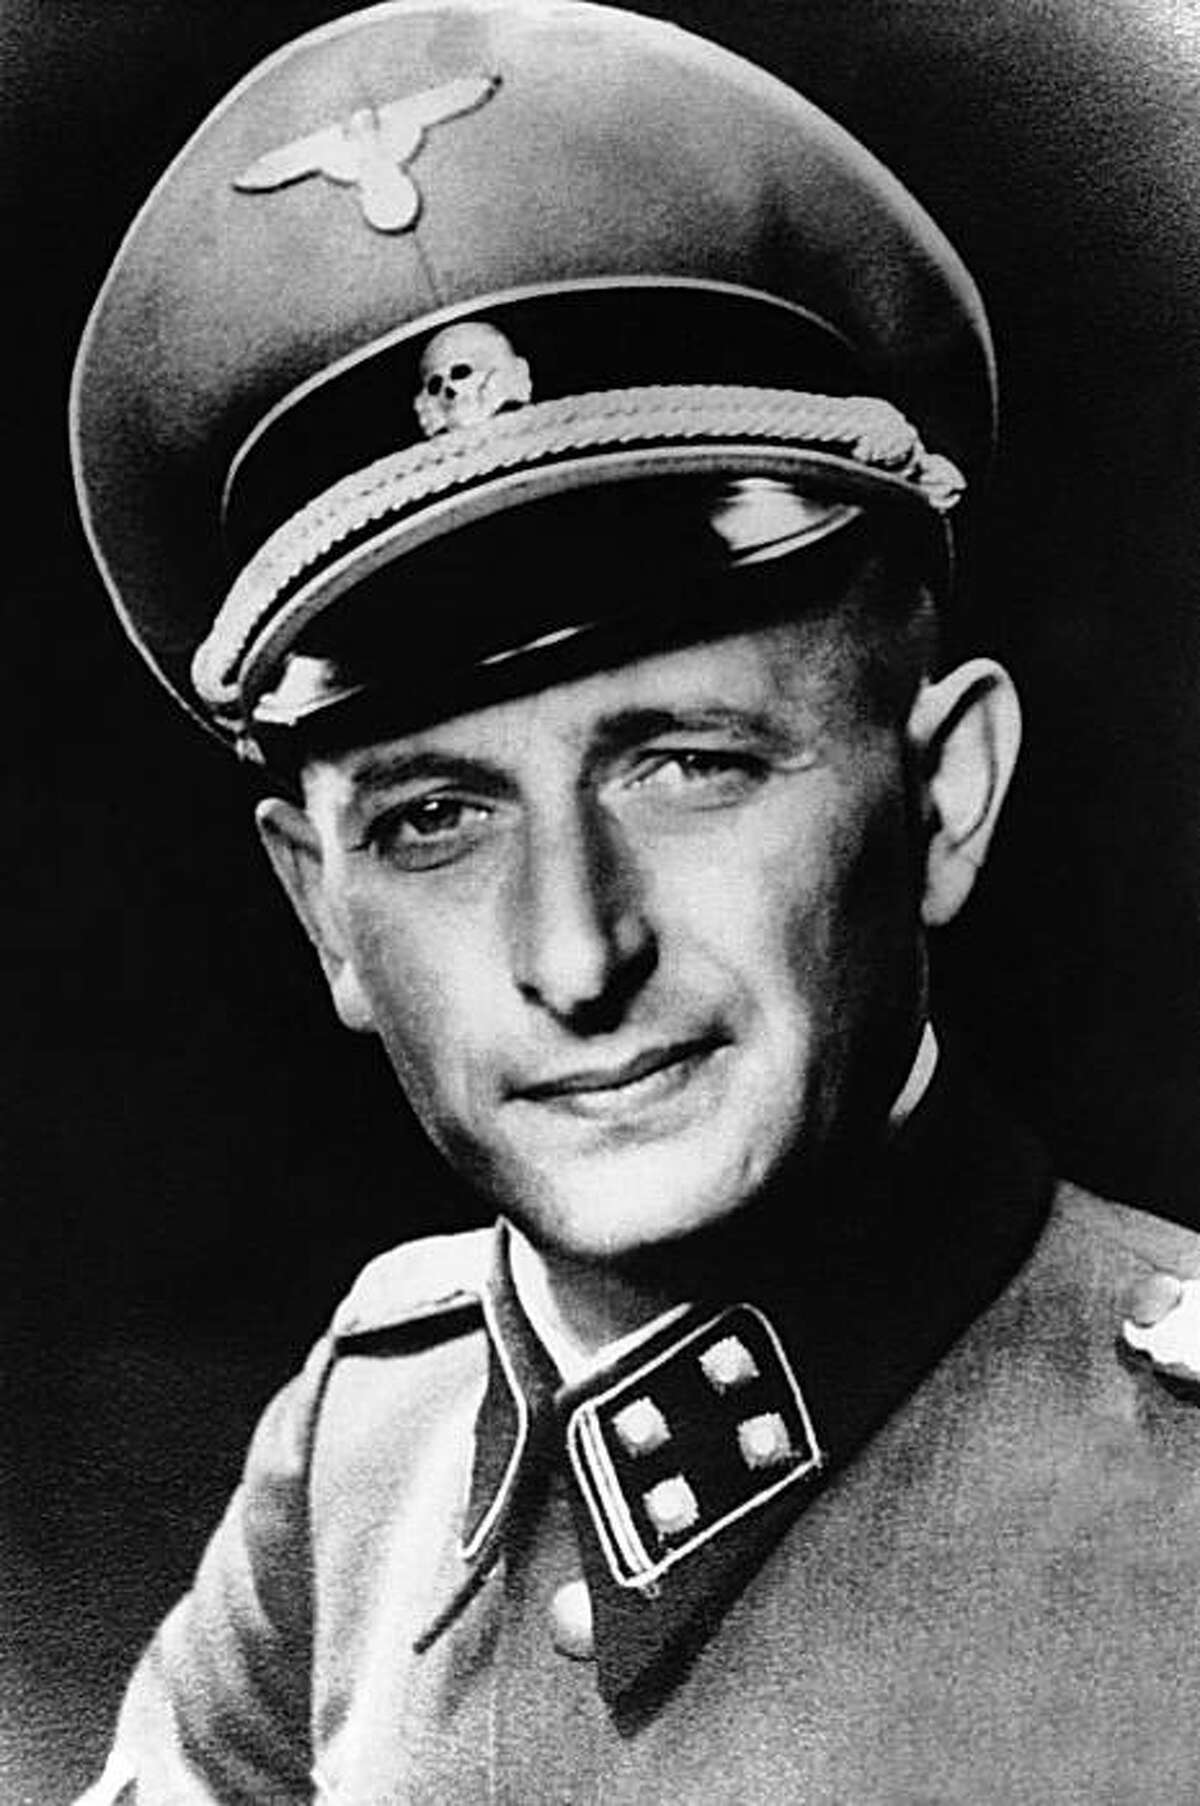 In this undated file picture Adolf Eichmann at the height of his power as the Nazi SS Lieutenant Colonel in charge of Hitler's Jewish bureau is photographed at unknown location. Germany's intelligence service has turned over thousands of files on Adolf Eichmann's whereabouts after World War II to a journalist who sued for them - but with so many passages blacked out and pages missing that she's taking the matter back to court. When freelance reporter Gabriele Weber went to see the files on the man known as the